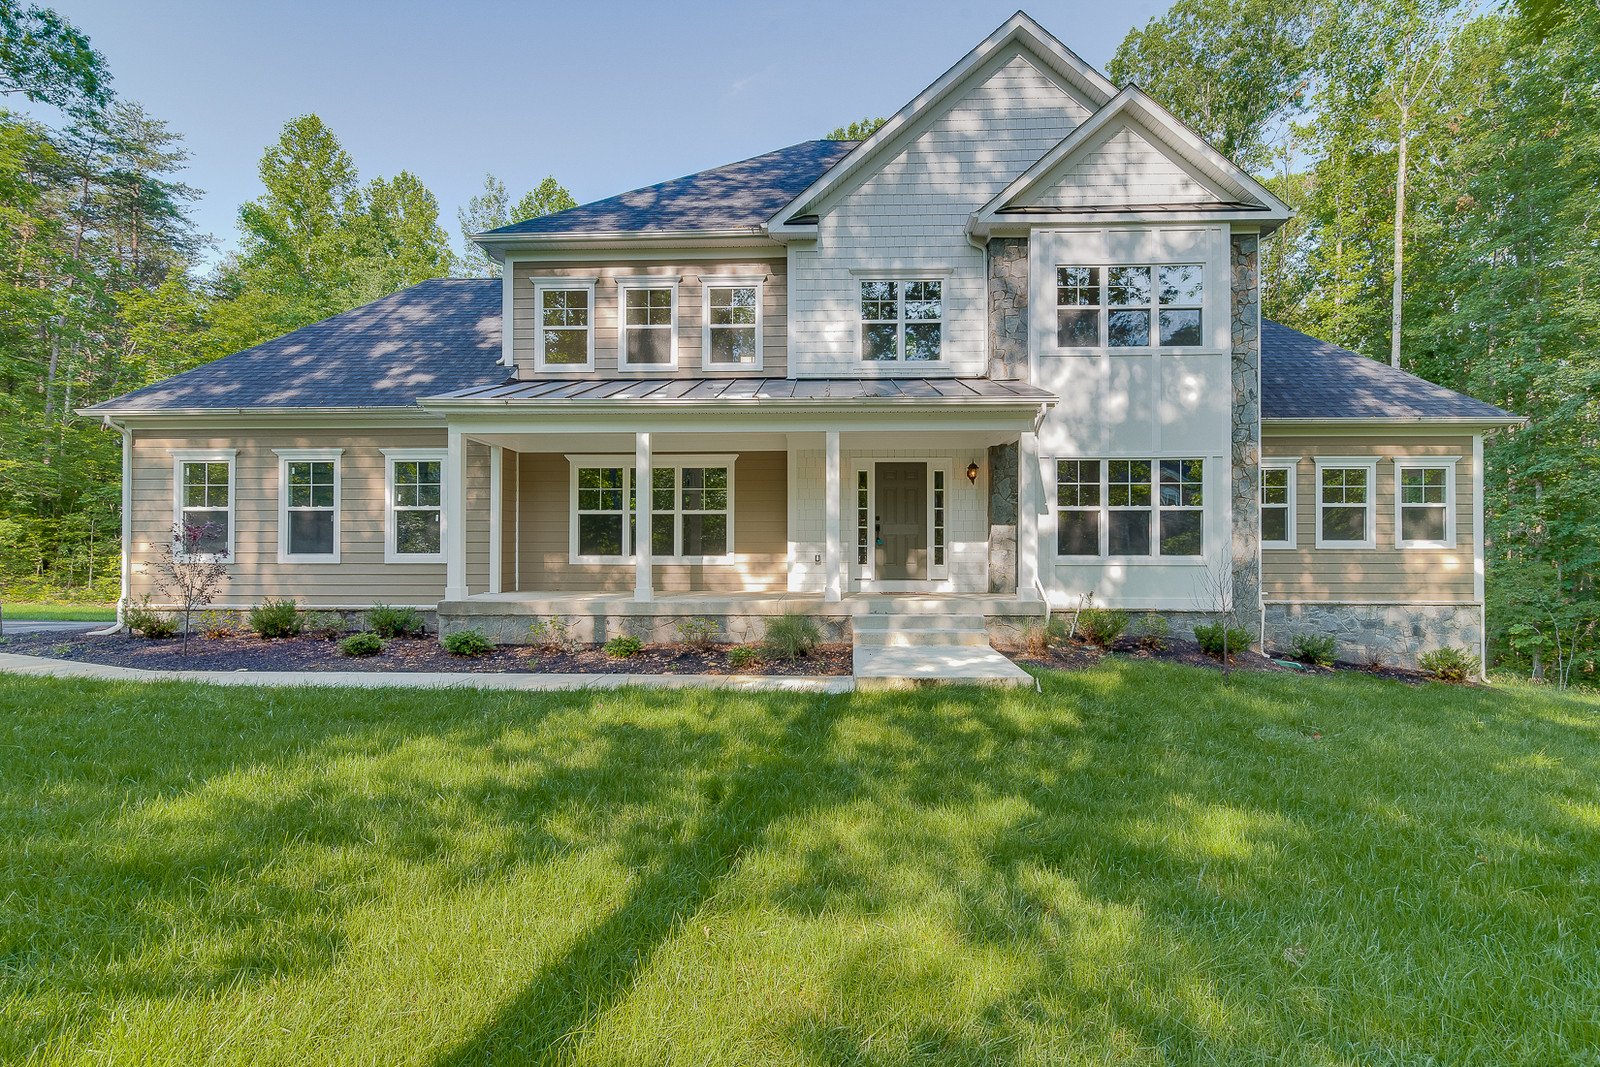 Home of the Week: Modern new construction